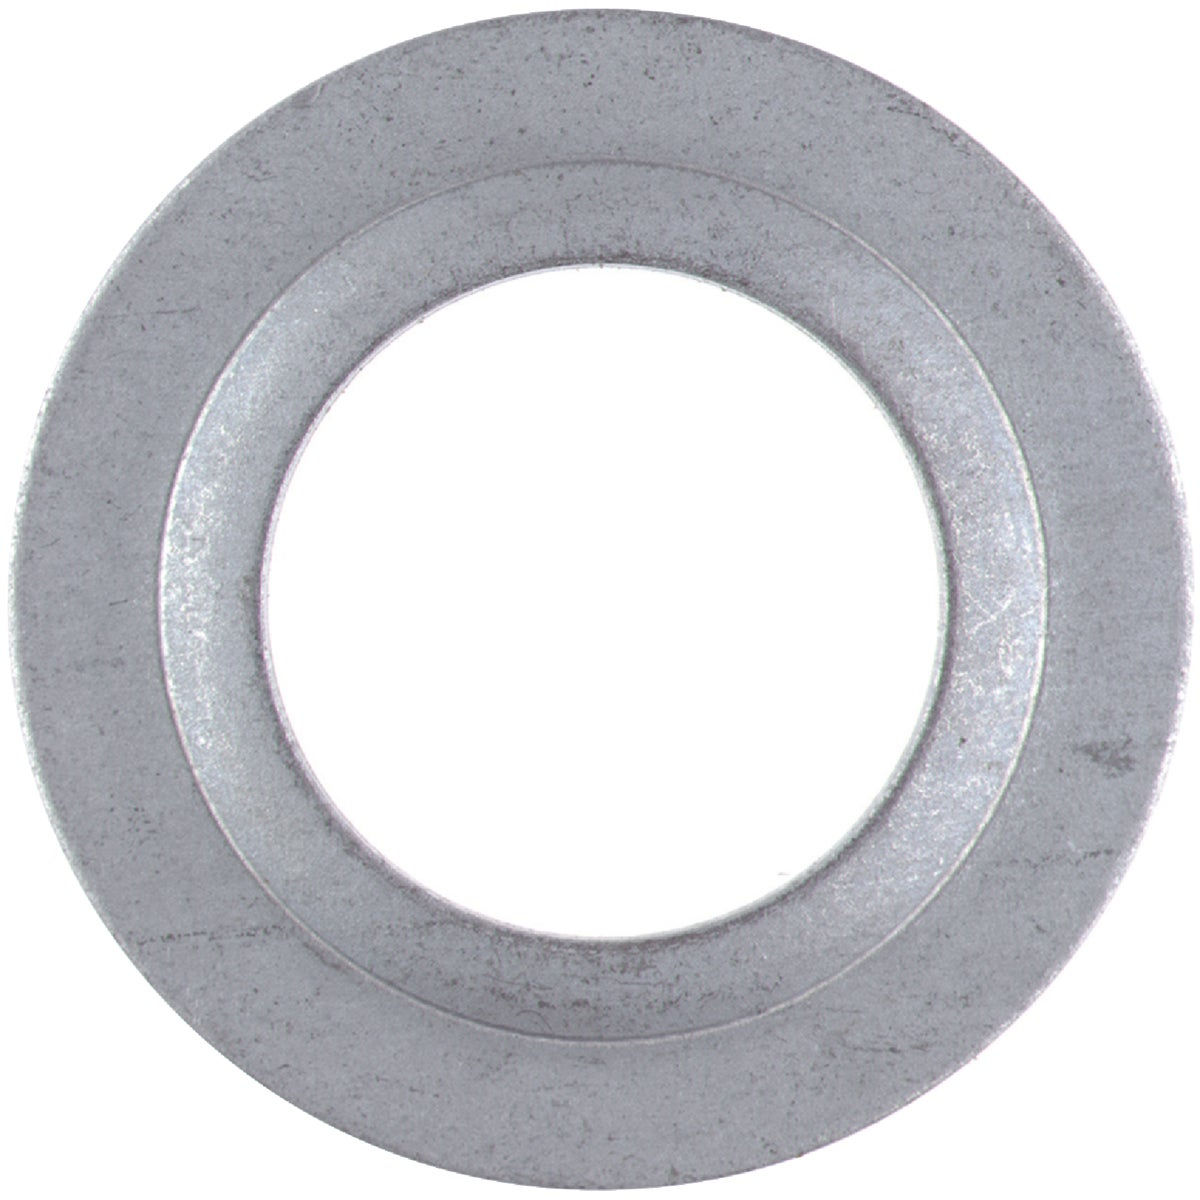 3/4X1/2 REDUCE WASHER - WA1214 by Thomas & Betts